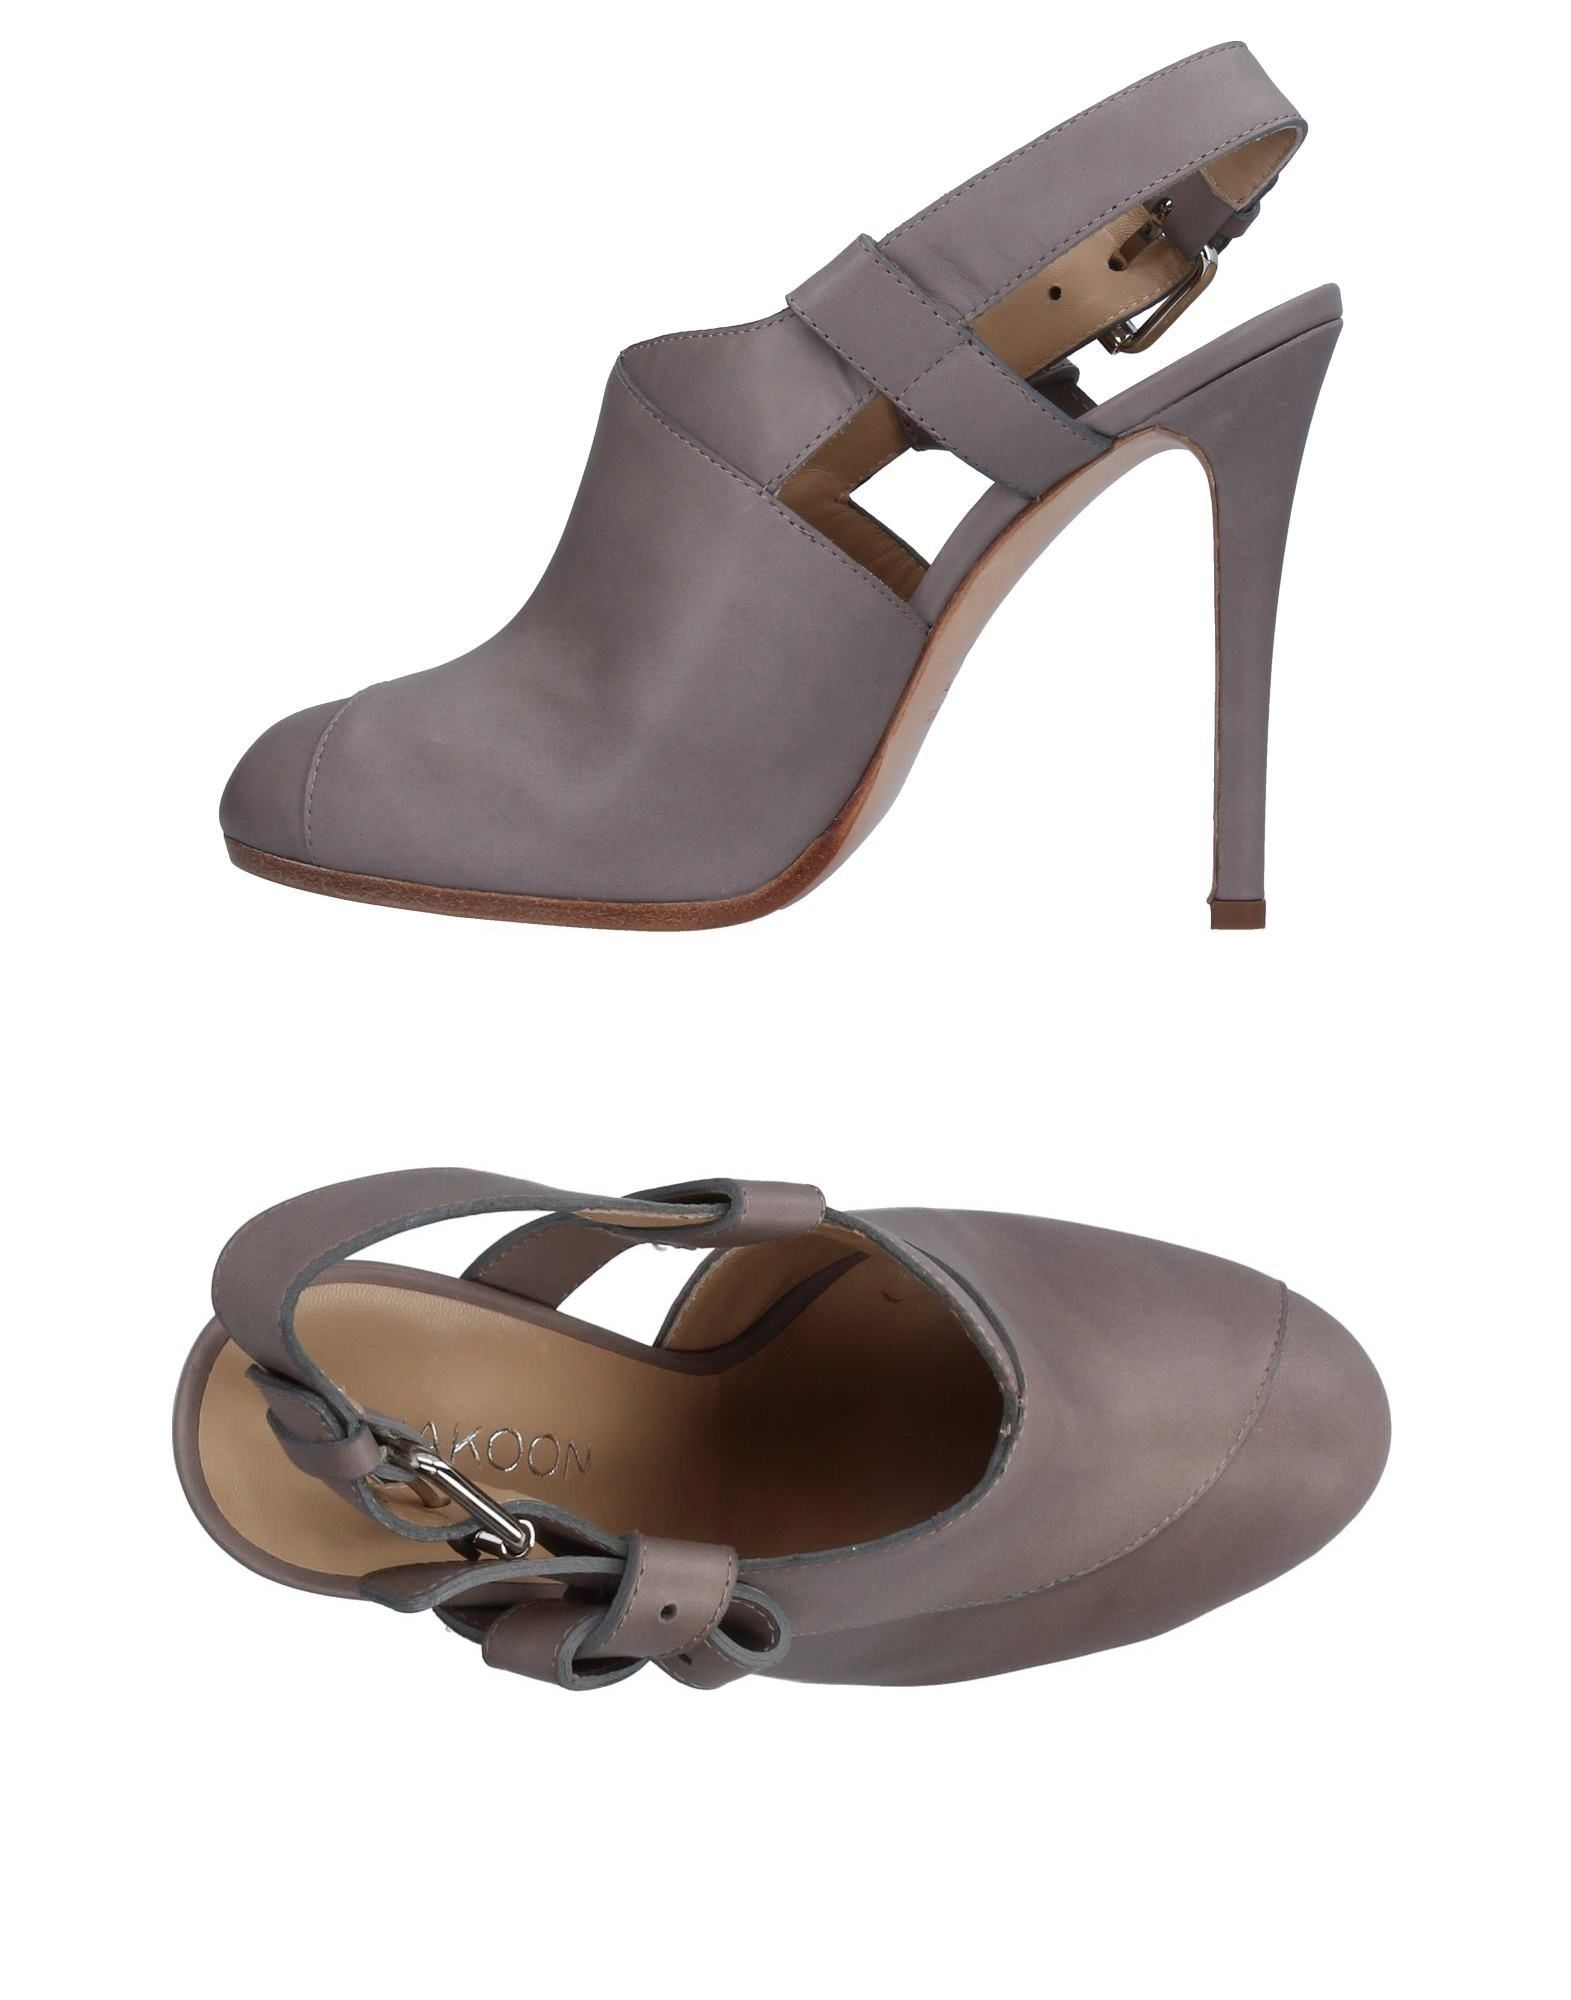 Mules Thakoon Femme - Mules Thakoon sur